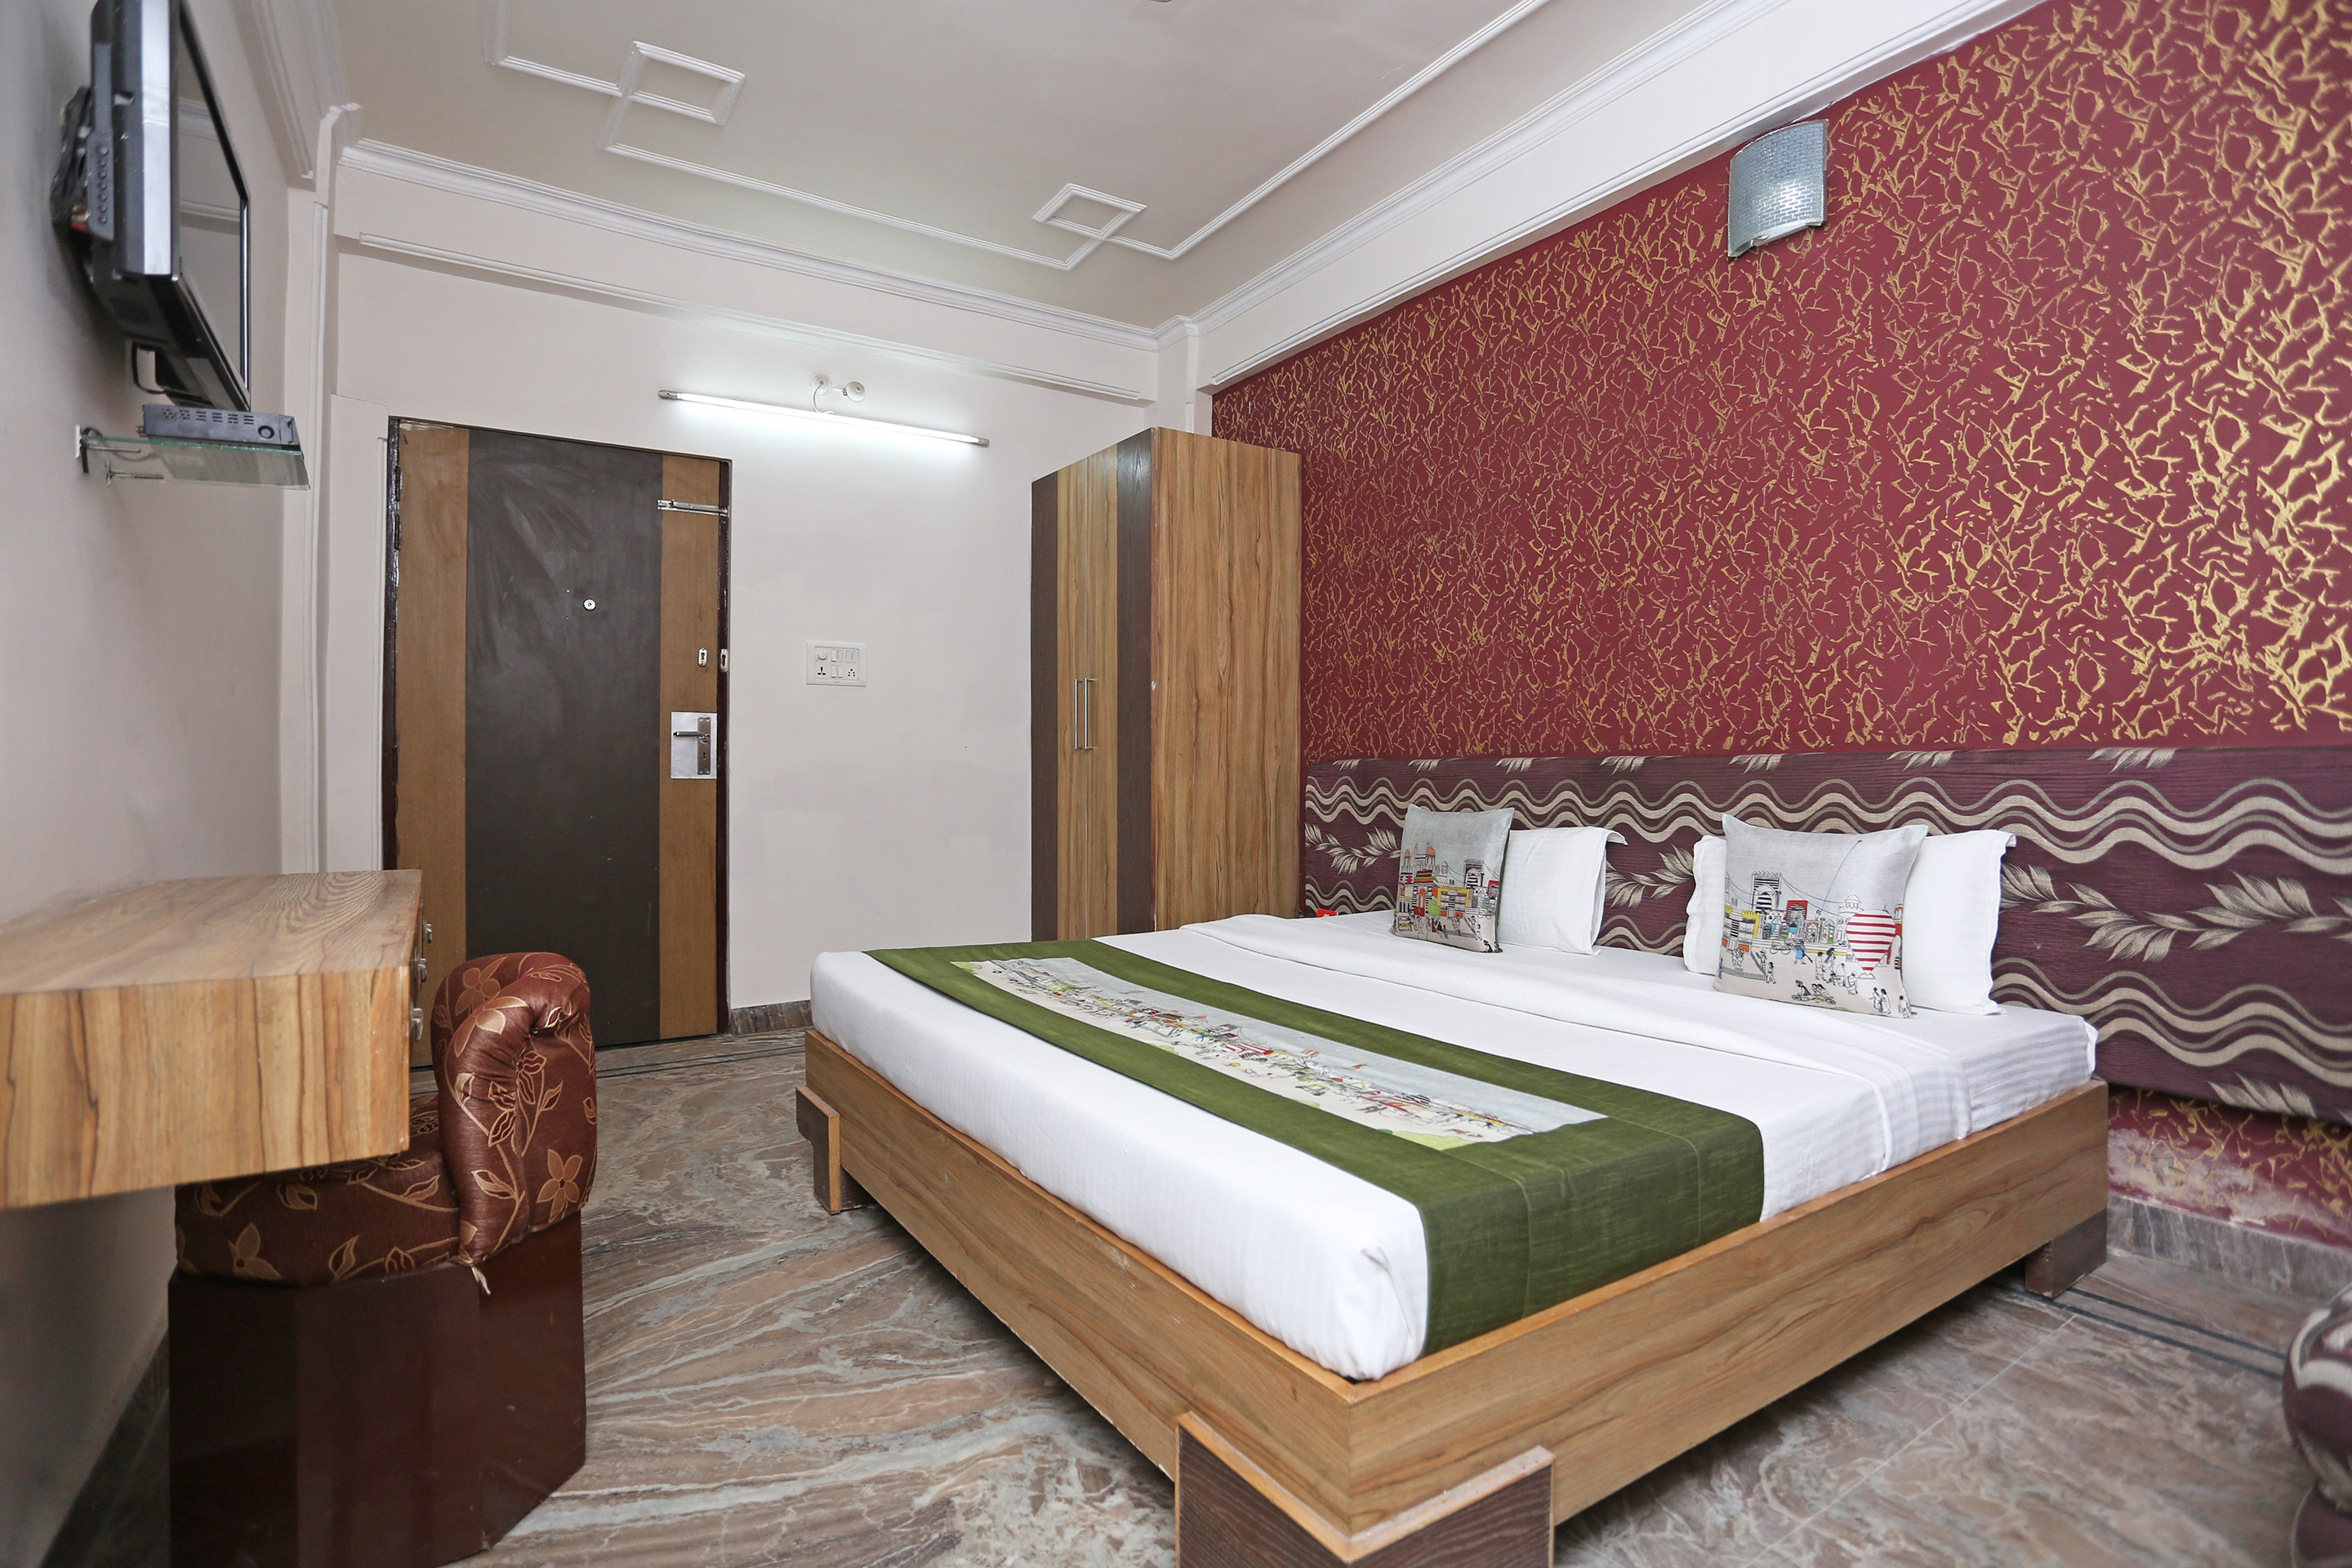 Hotel Gallarey OYO 10961 near Railway Station